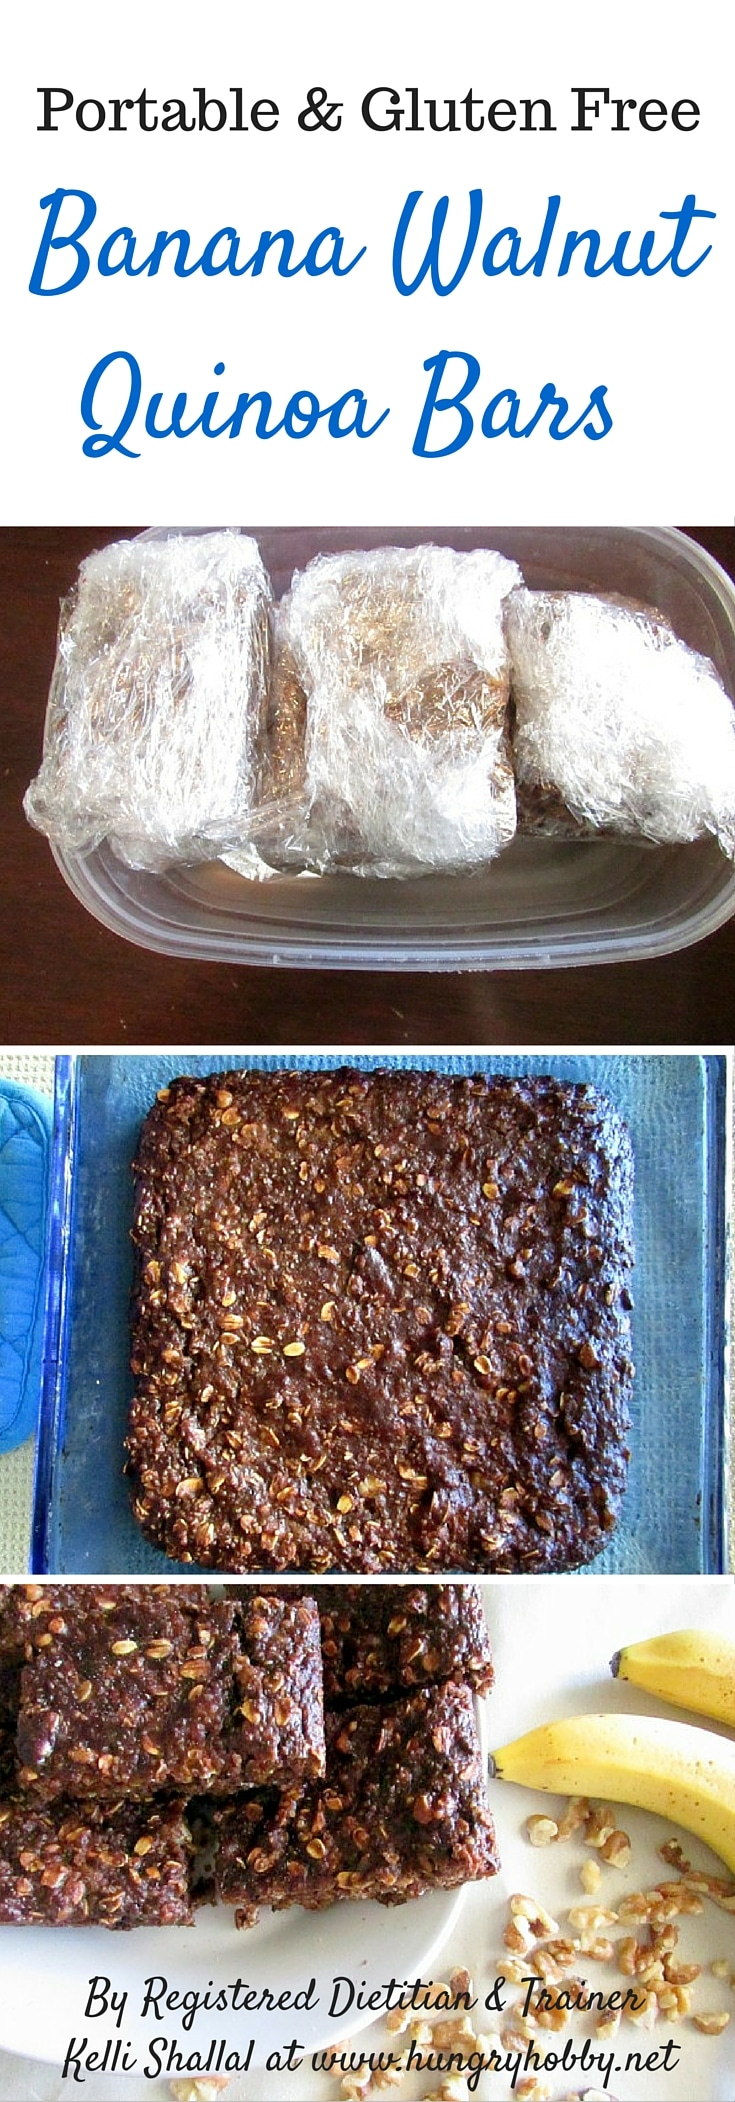 Banana Walnut Quinoa bars are a portable delicious breakfast packed with whole grains, fiber, and healthy fats to keep you full! gluten free